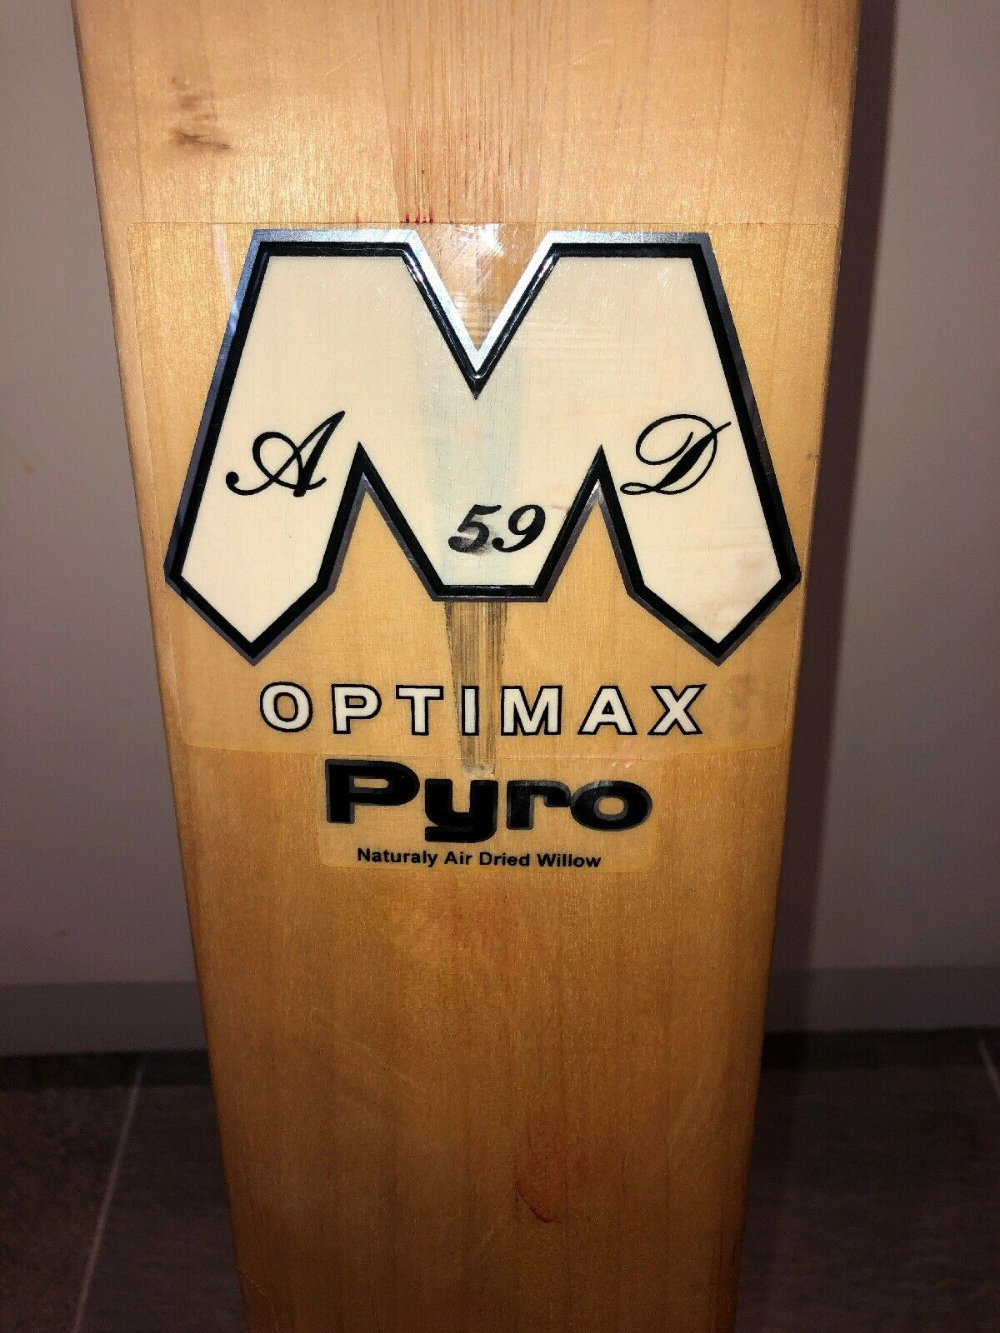 Details About Optimax Pyro Cricket Bat Grade 2 English Willow 2lbs 9oz Cricket Bat Grade 2 English Cricket